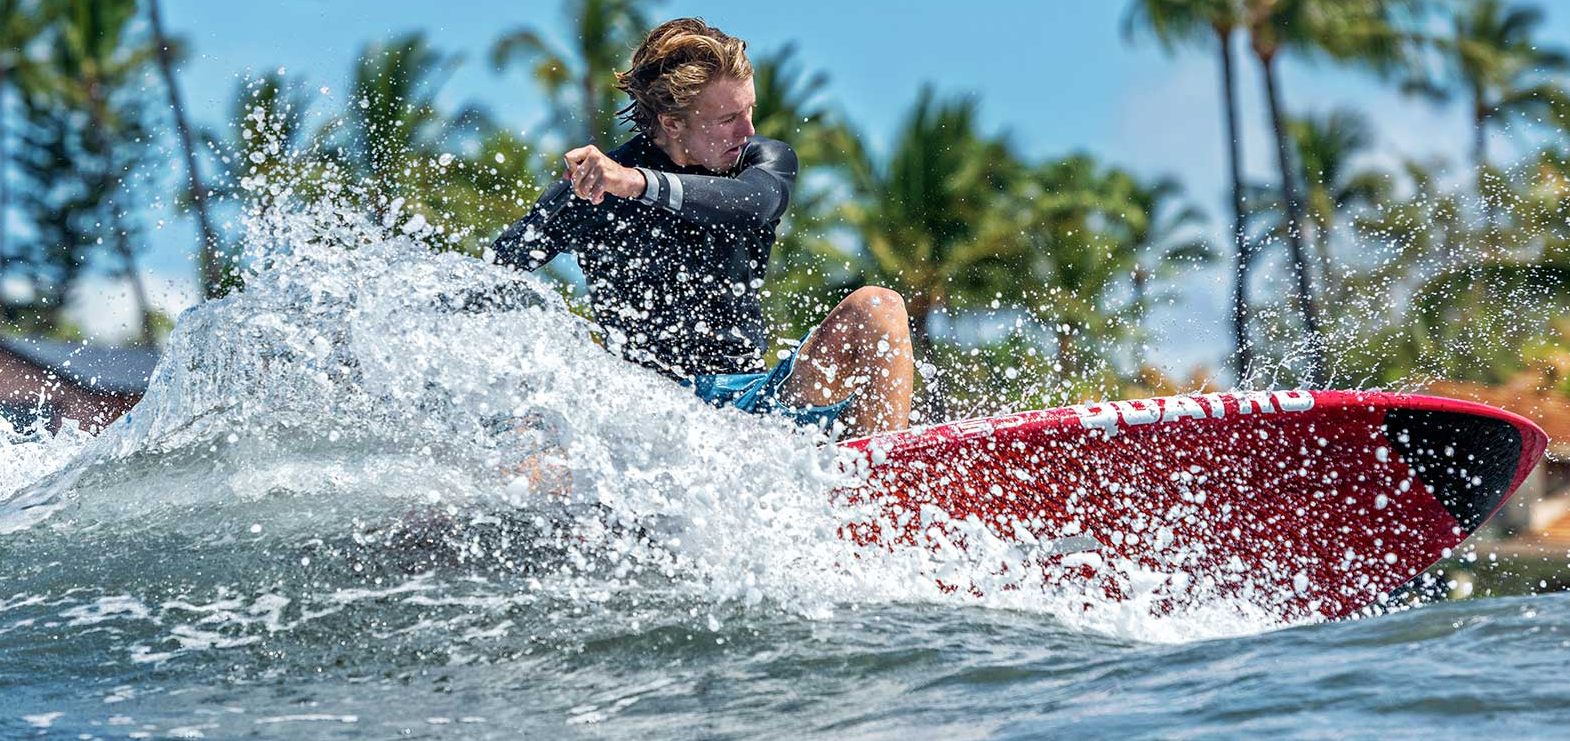 Man carving a wave while SUP surfing